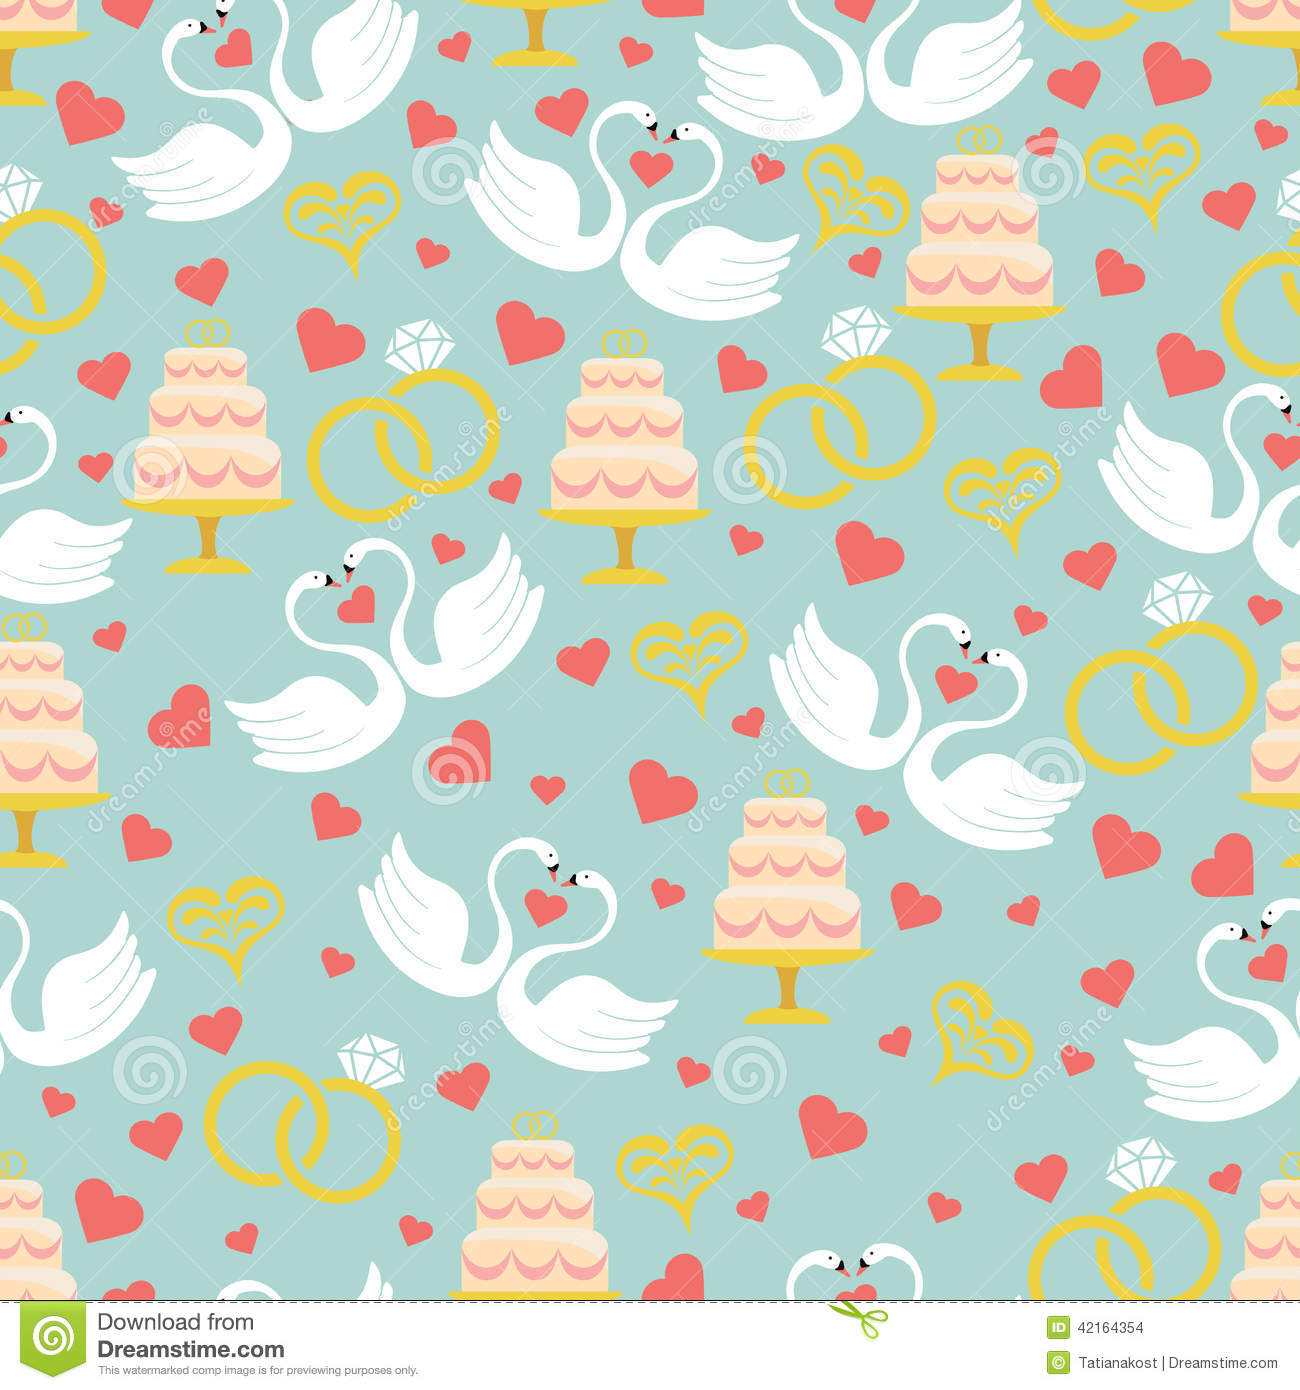 Vintage Wedding Seamless Pattern SetHearts Swanscakerings Stock